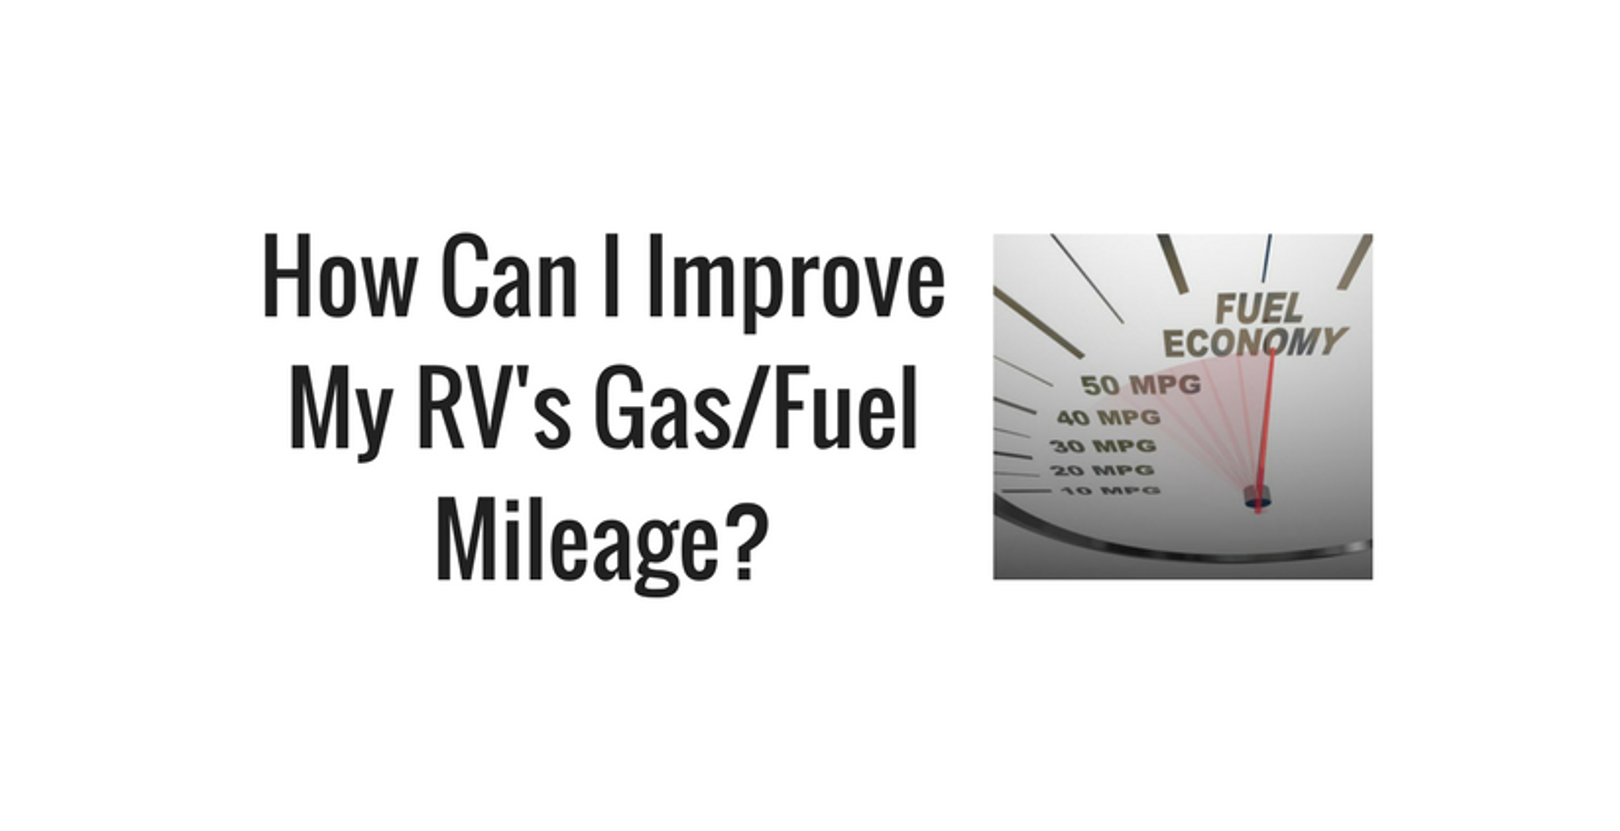 How Can I Improve my RV's Gas/Fuel Mileage?